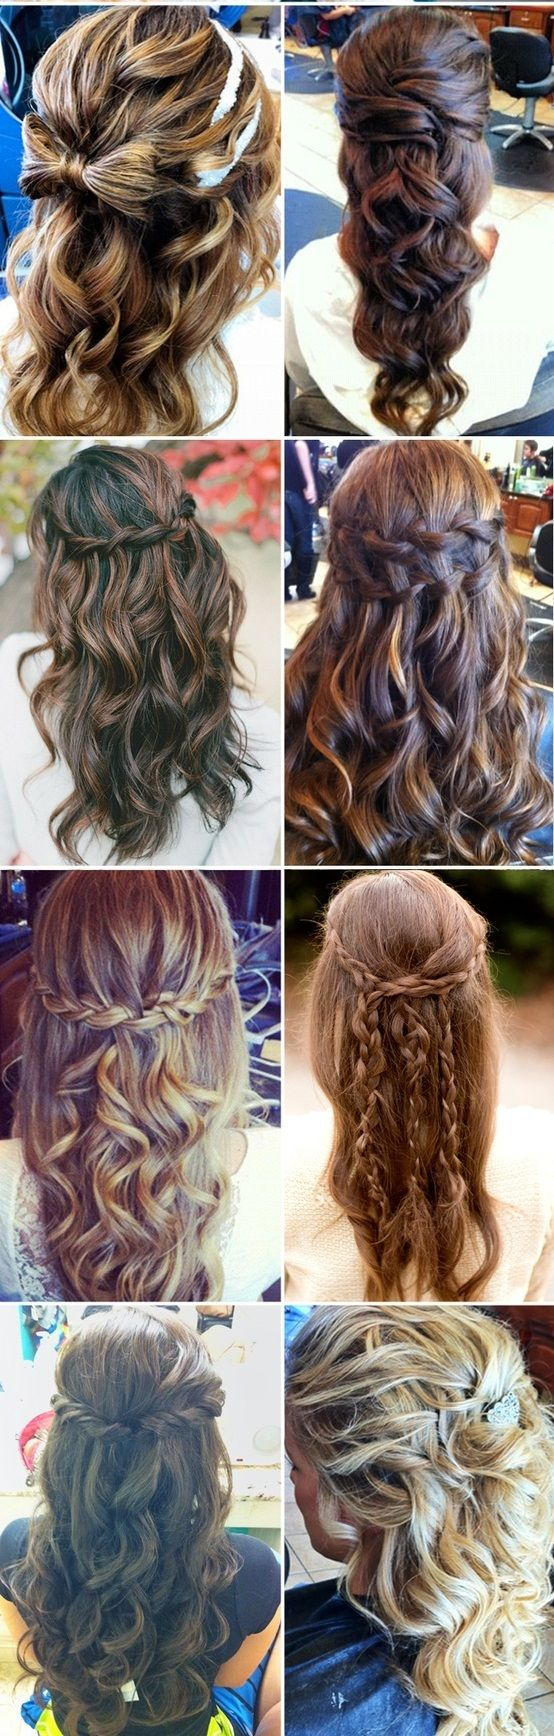 659 best hairstyles images on pinterest hair ideas cute 17 winter bridal hairstyles for indian women solutioingenieria Image collections